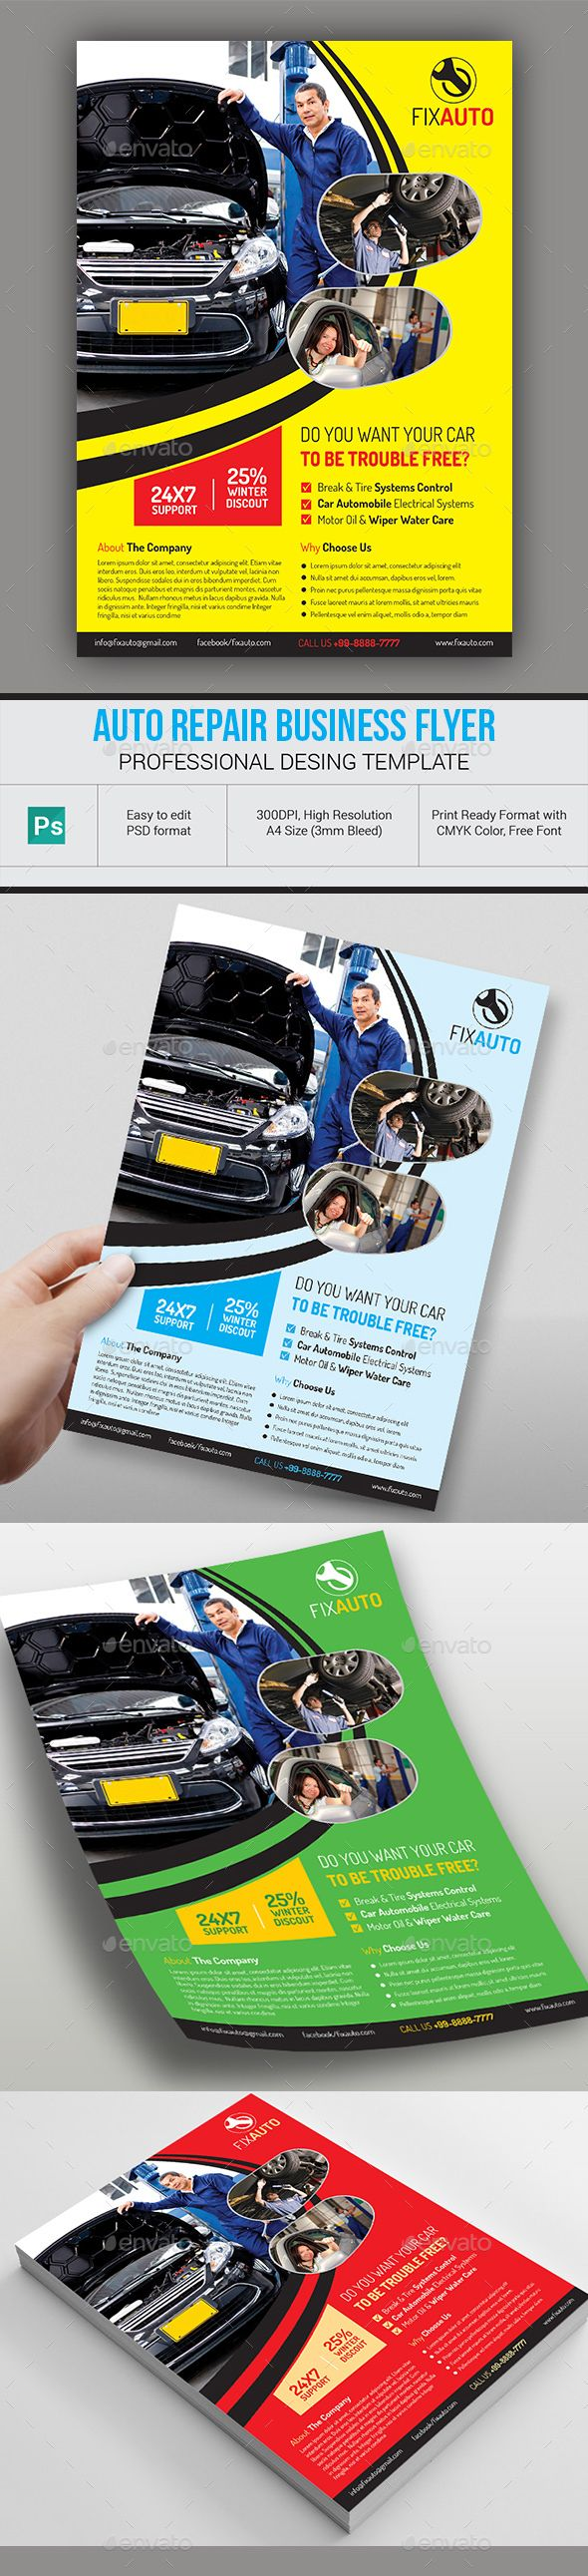 automotive repair flyers examples north road auto 845 471 8255